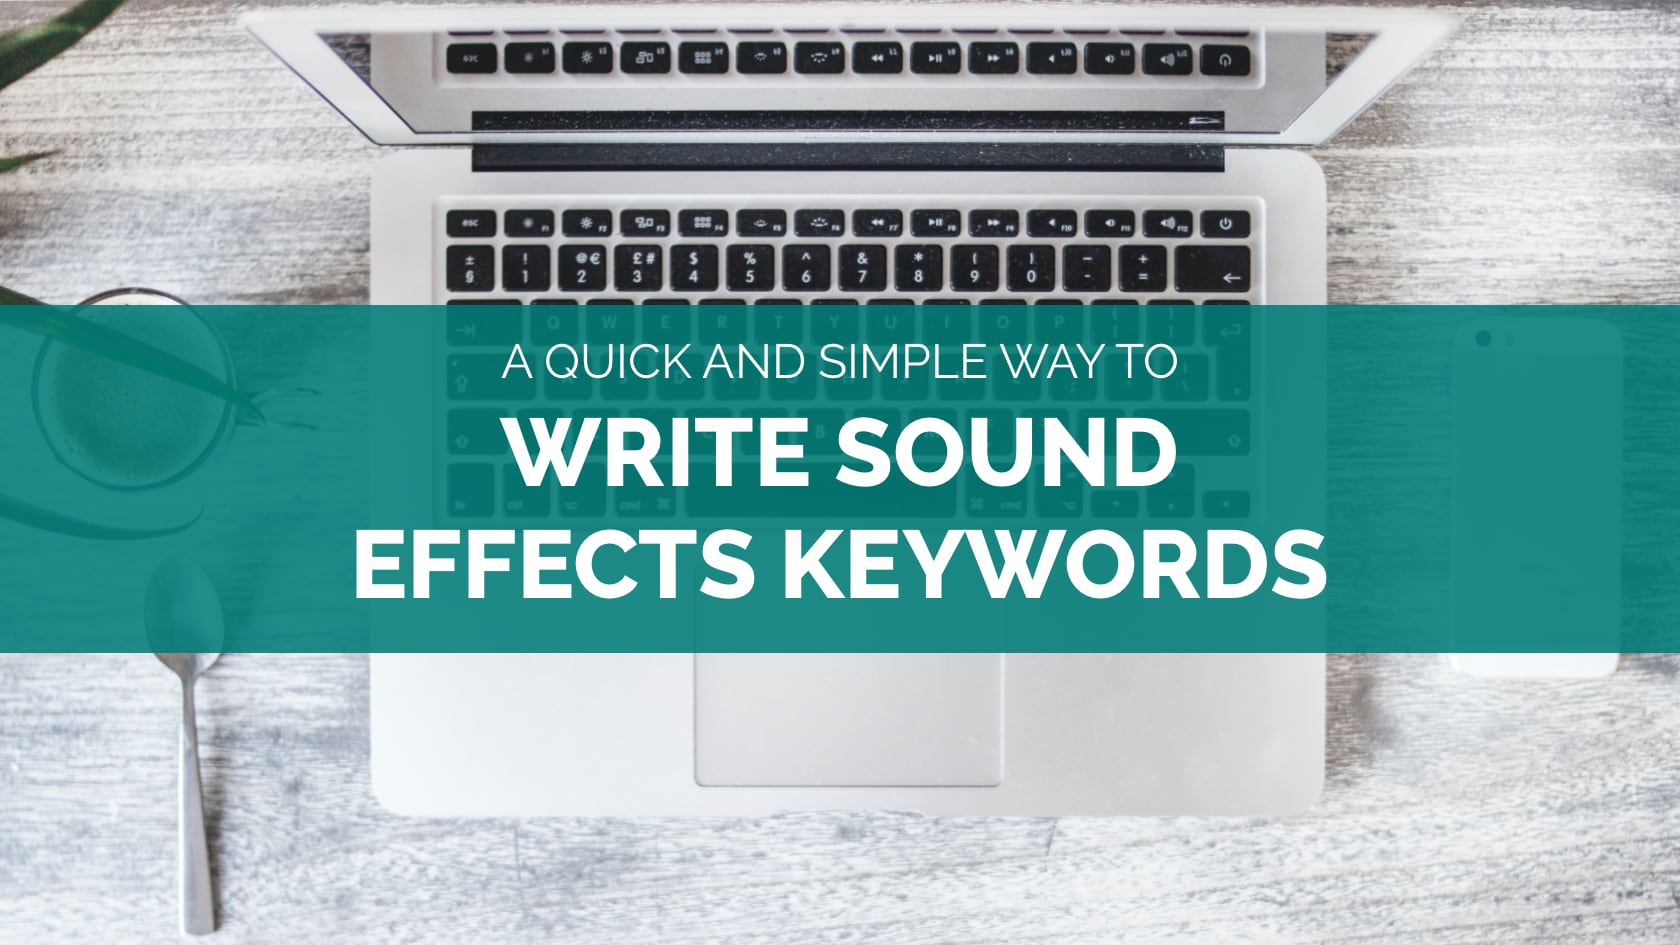 How to Write Sound Effects Keywords